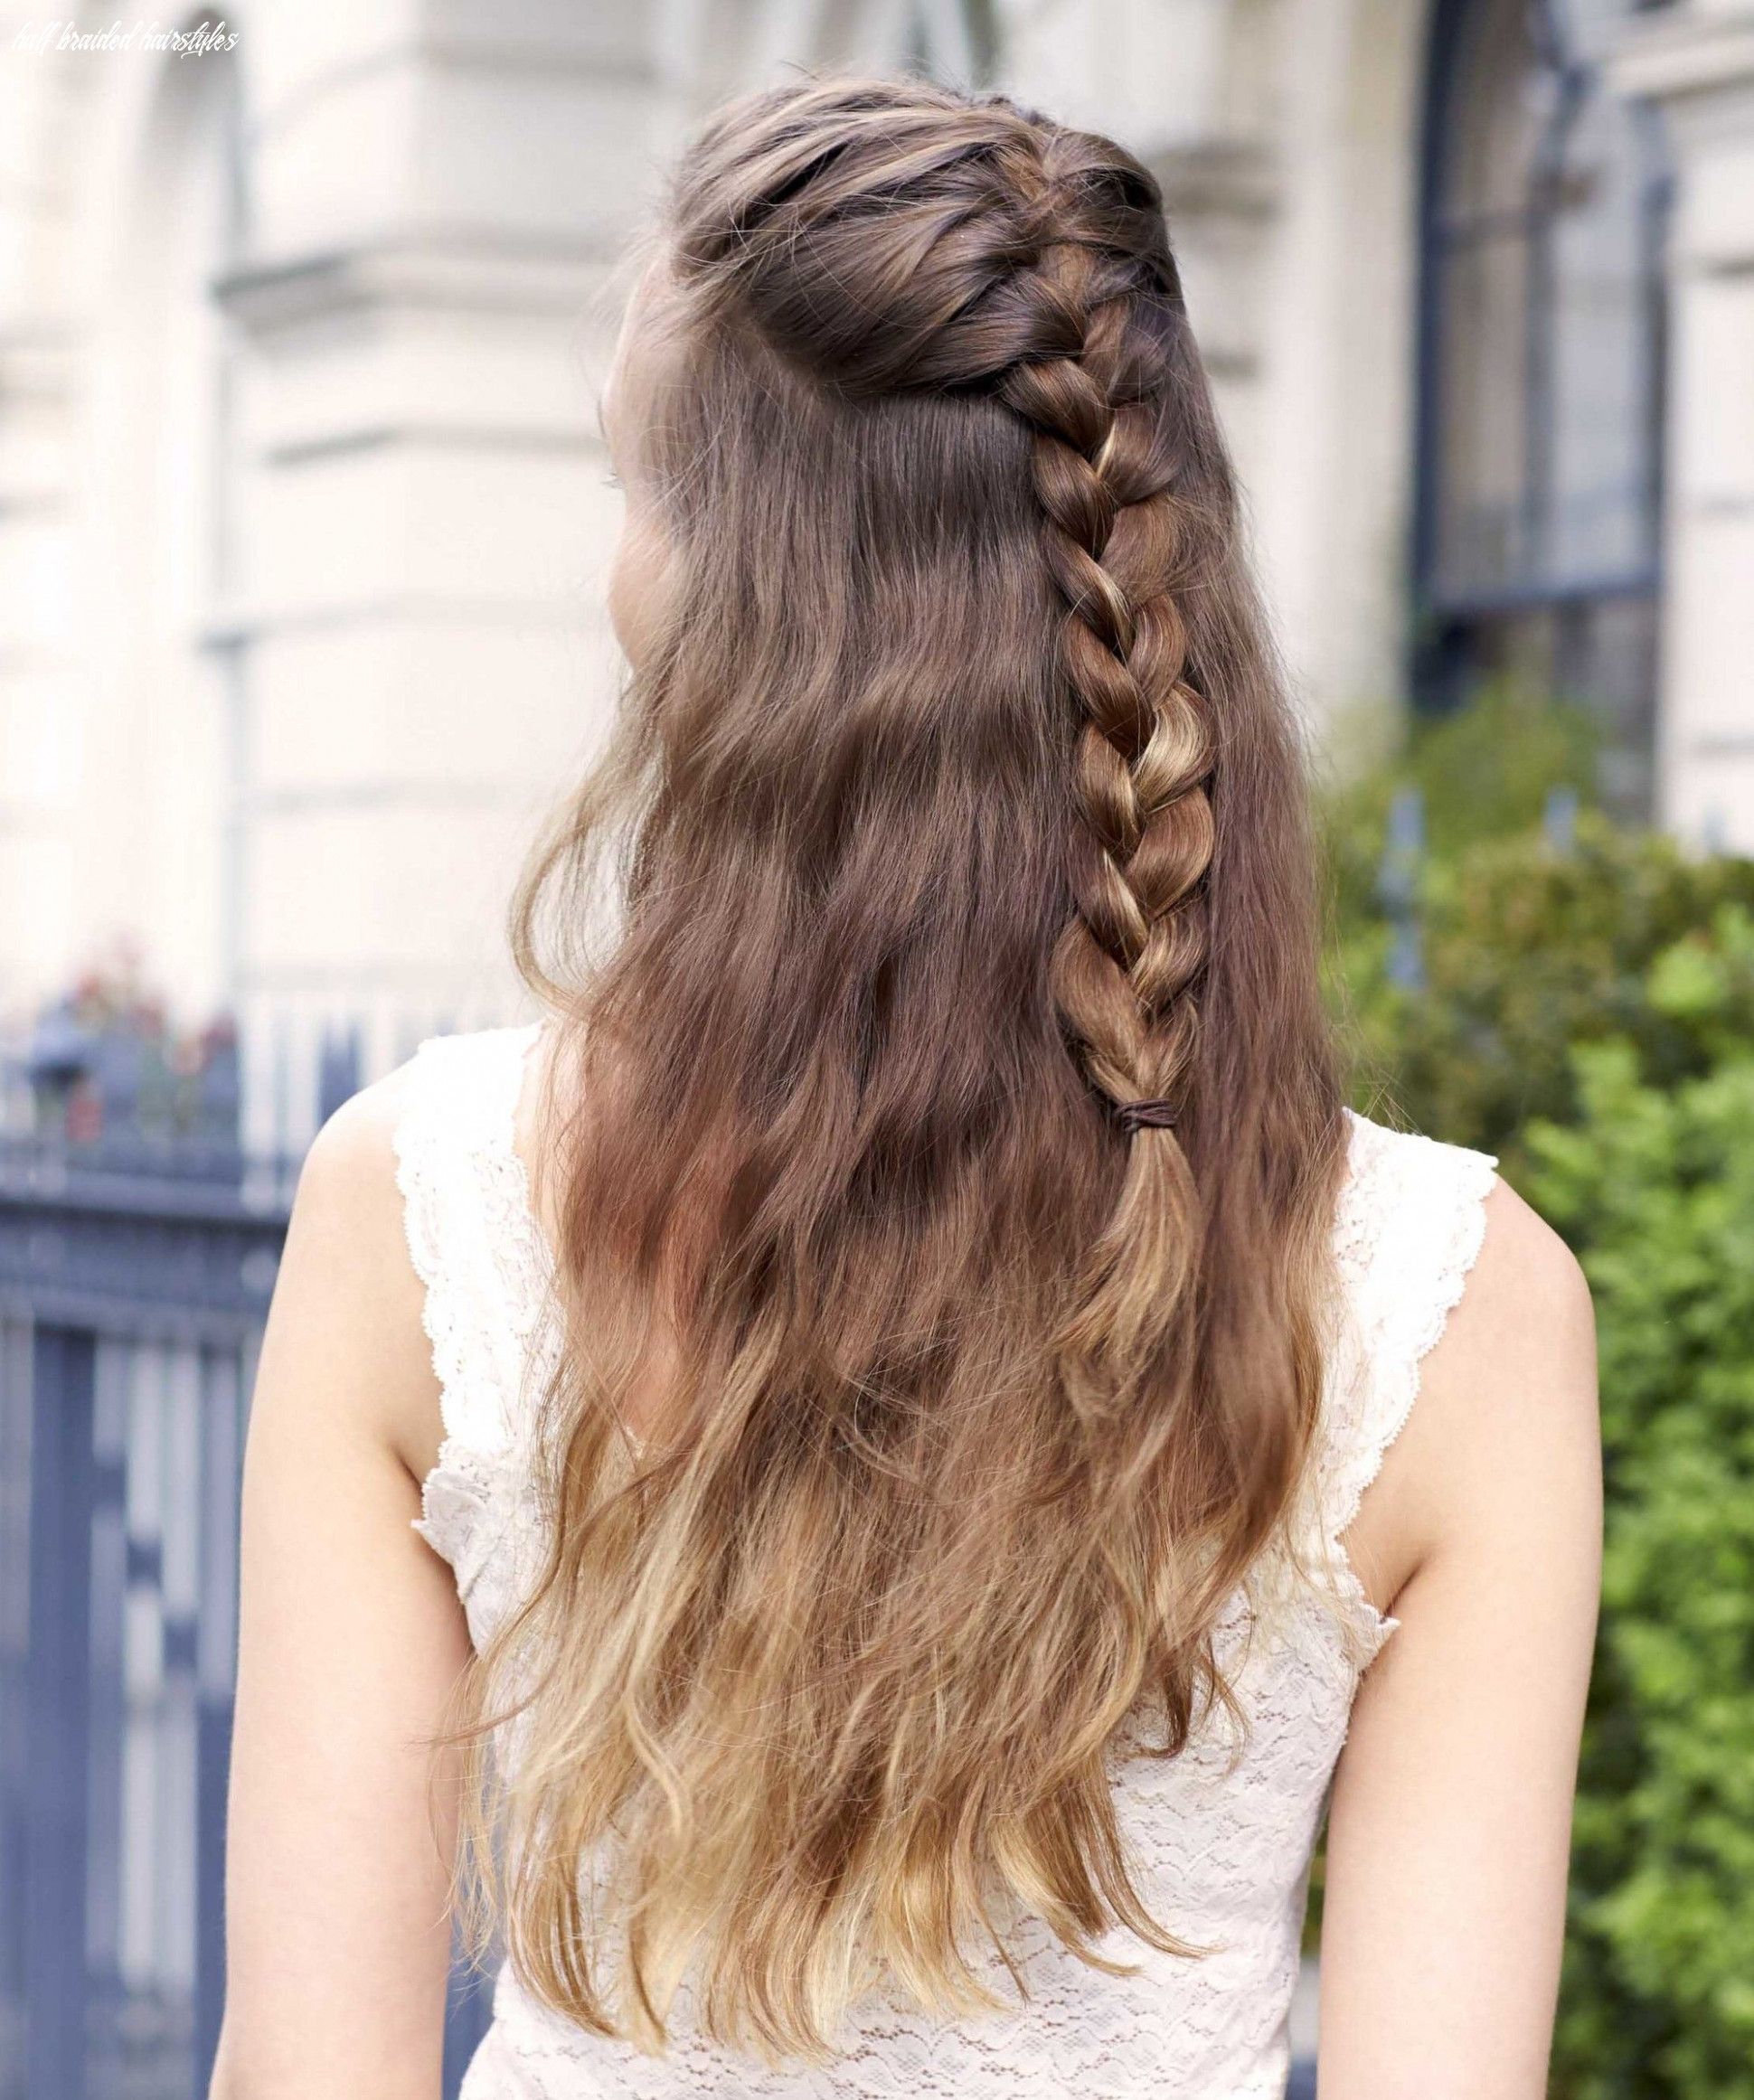 10 half braided hairstyles you can master in minutes half braided hairstyles